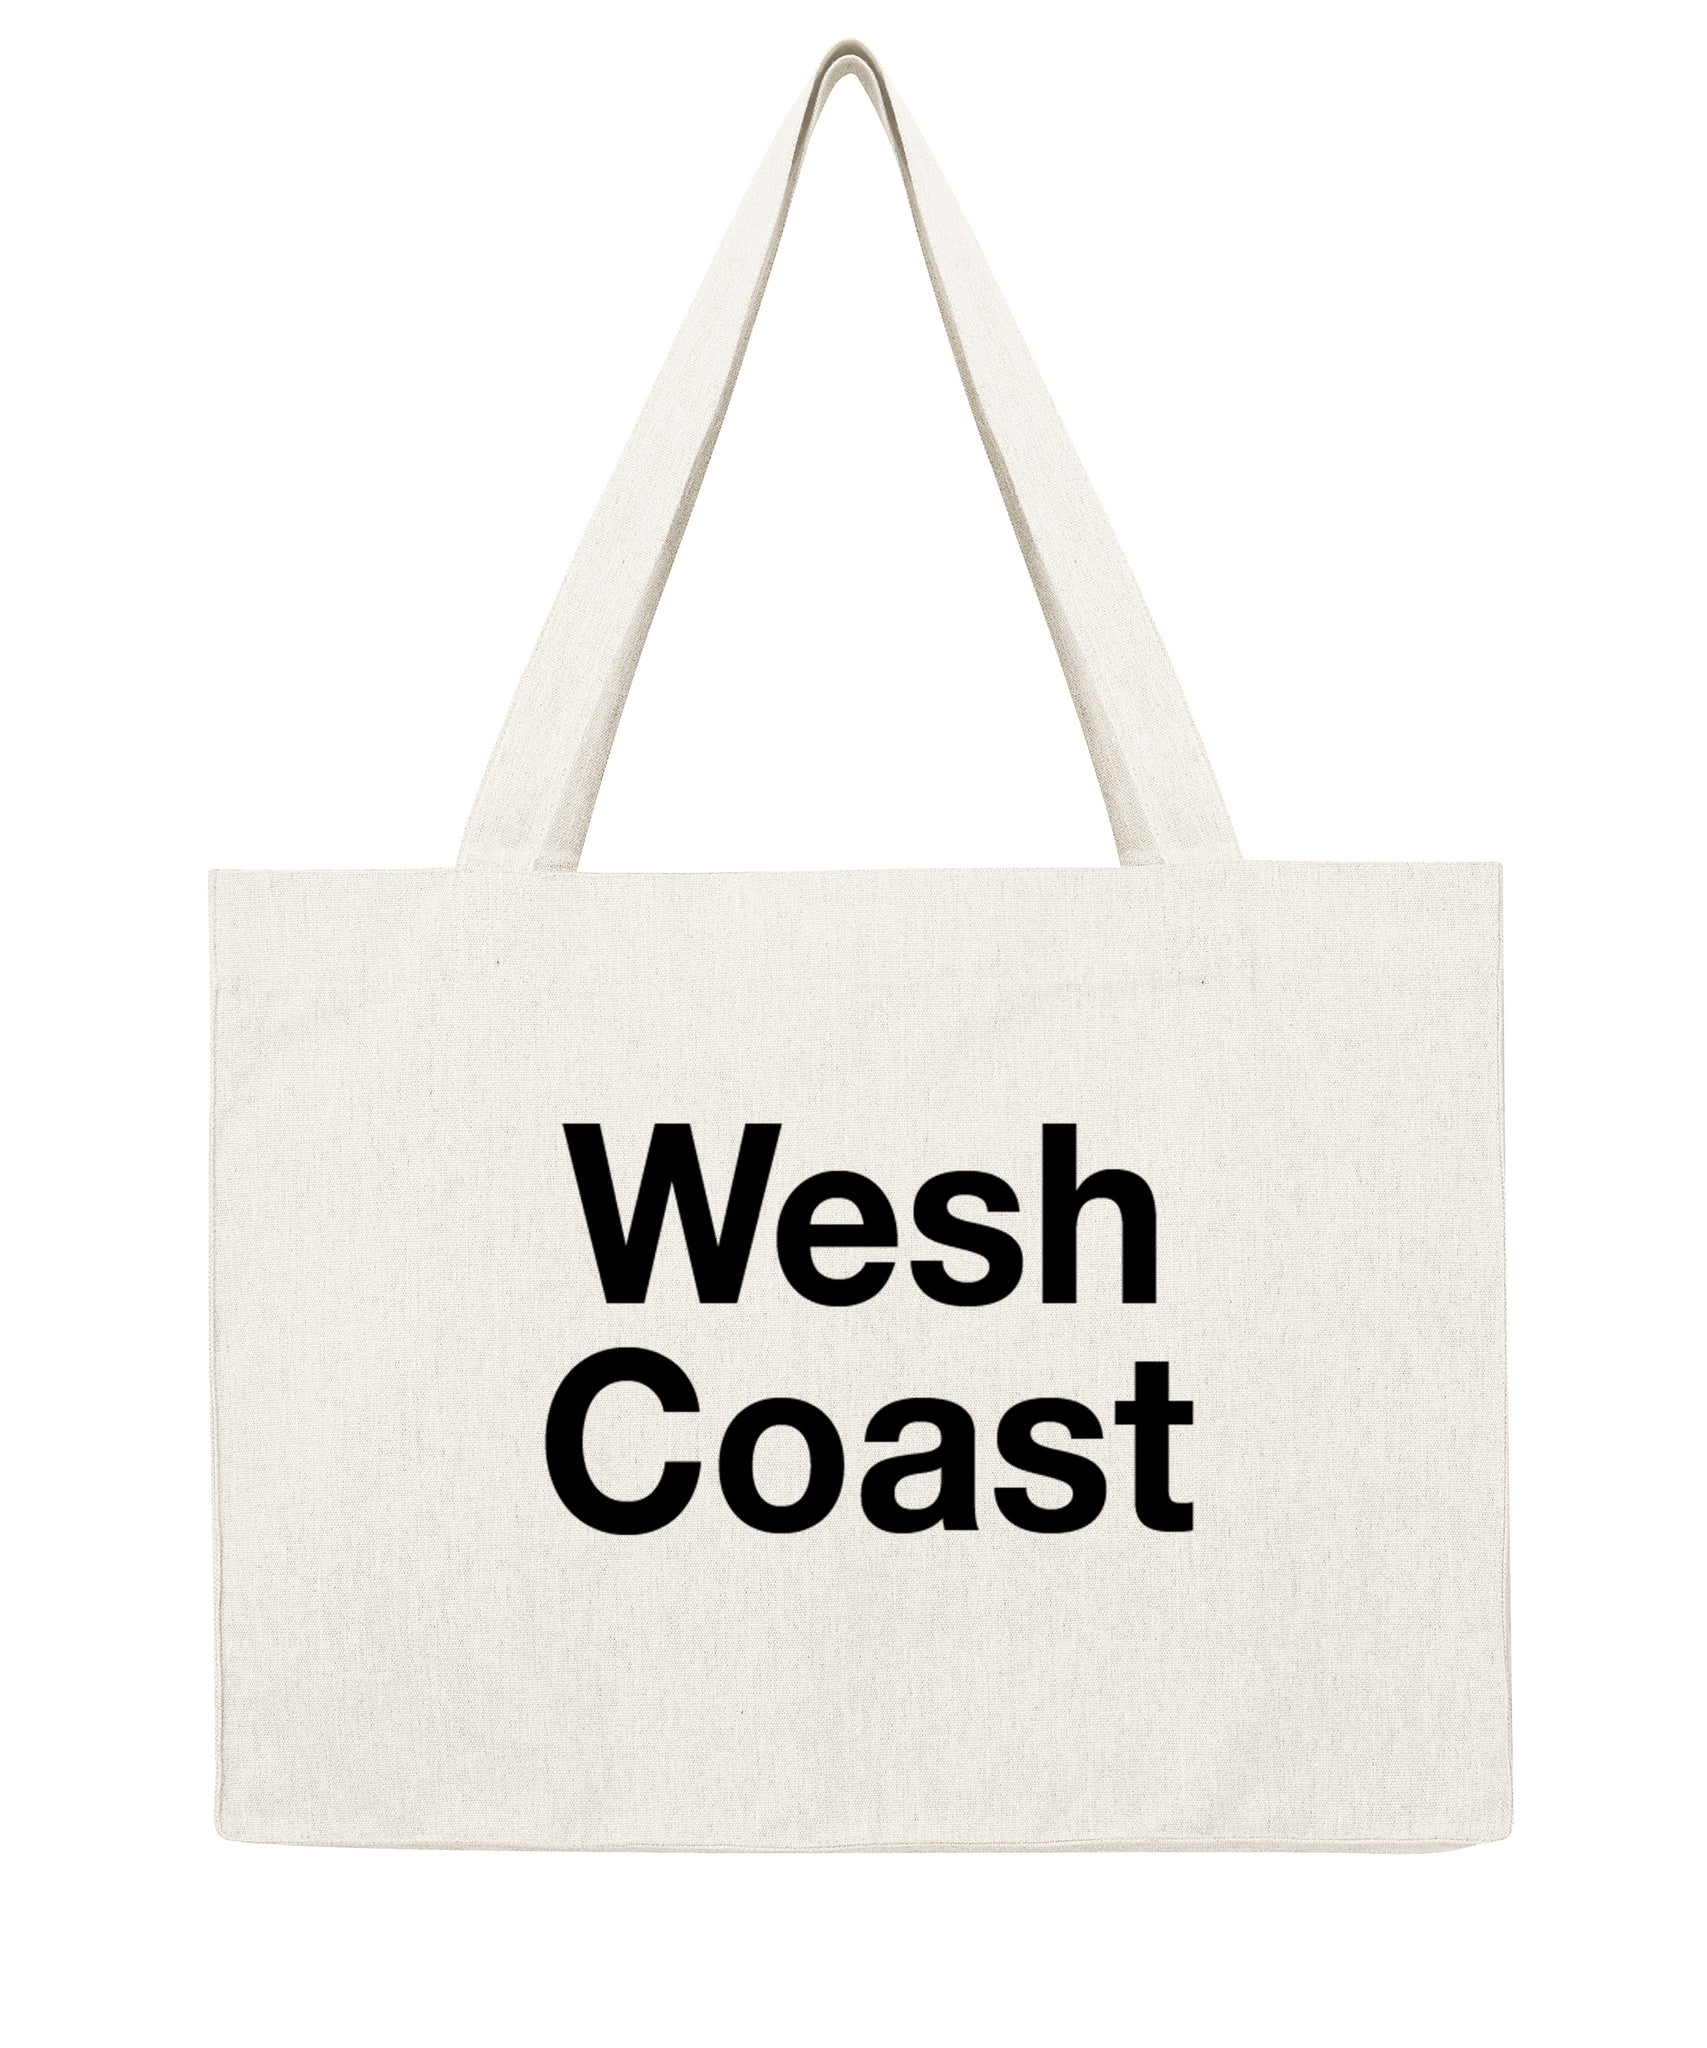 Wesh Coast - Shopping bag-Sacs-Atelier Amelot